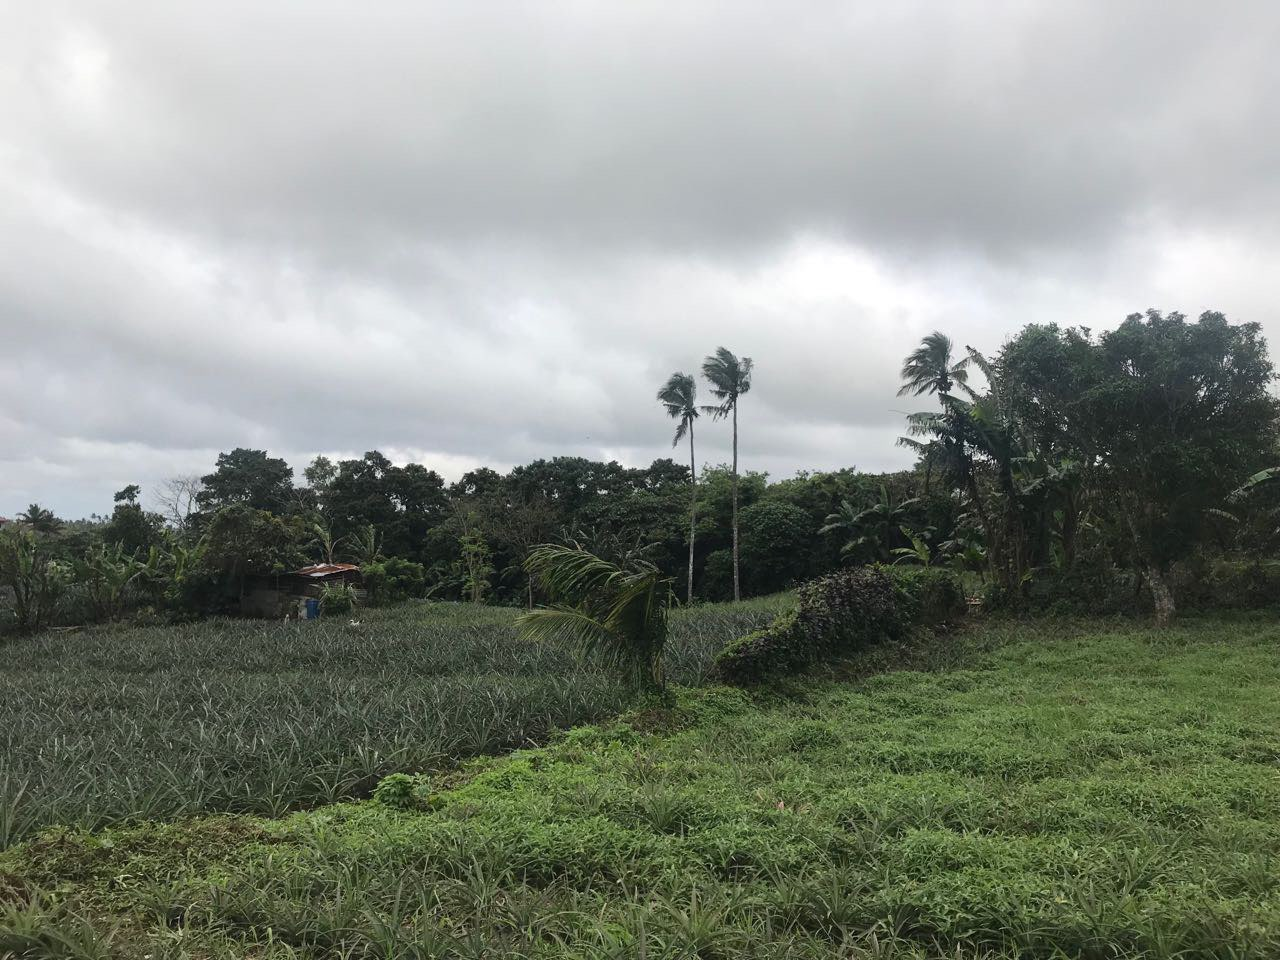 Agricultural Lot For Sale, Silang, Cavite 2